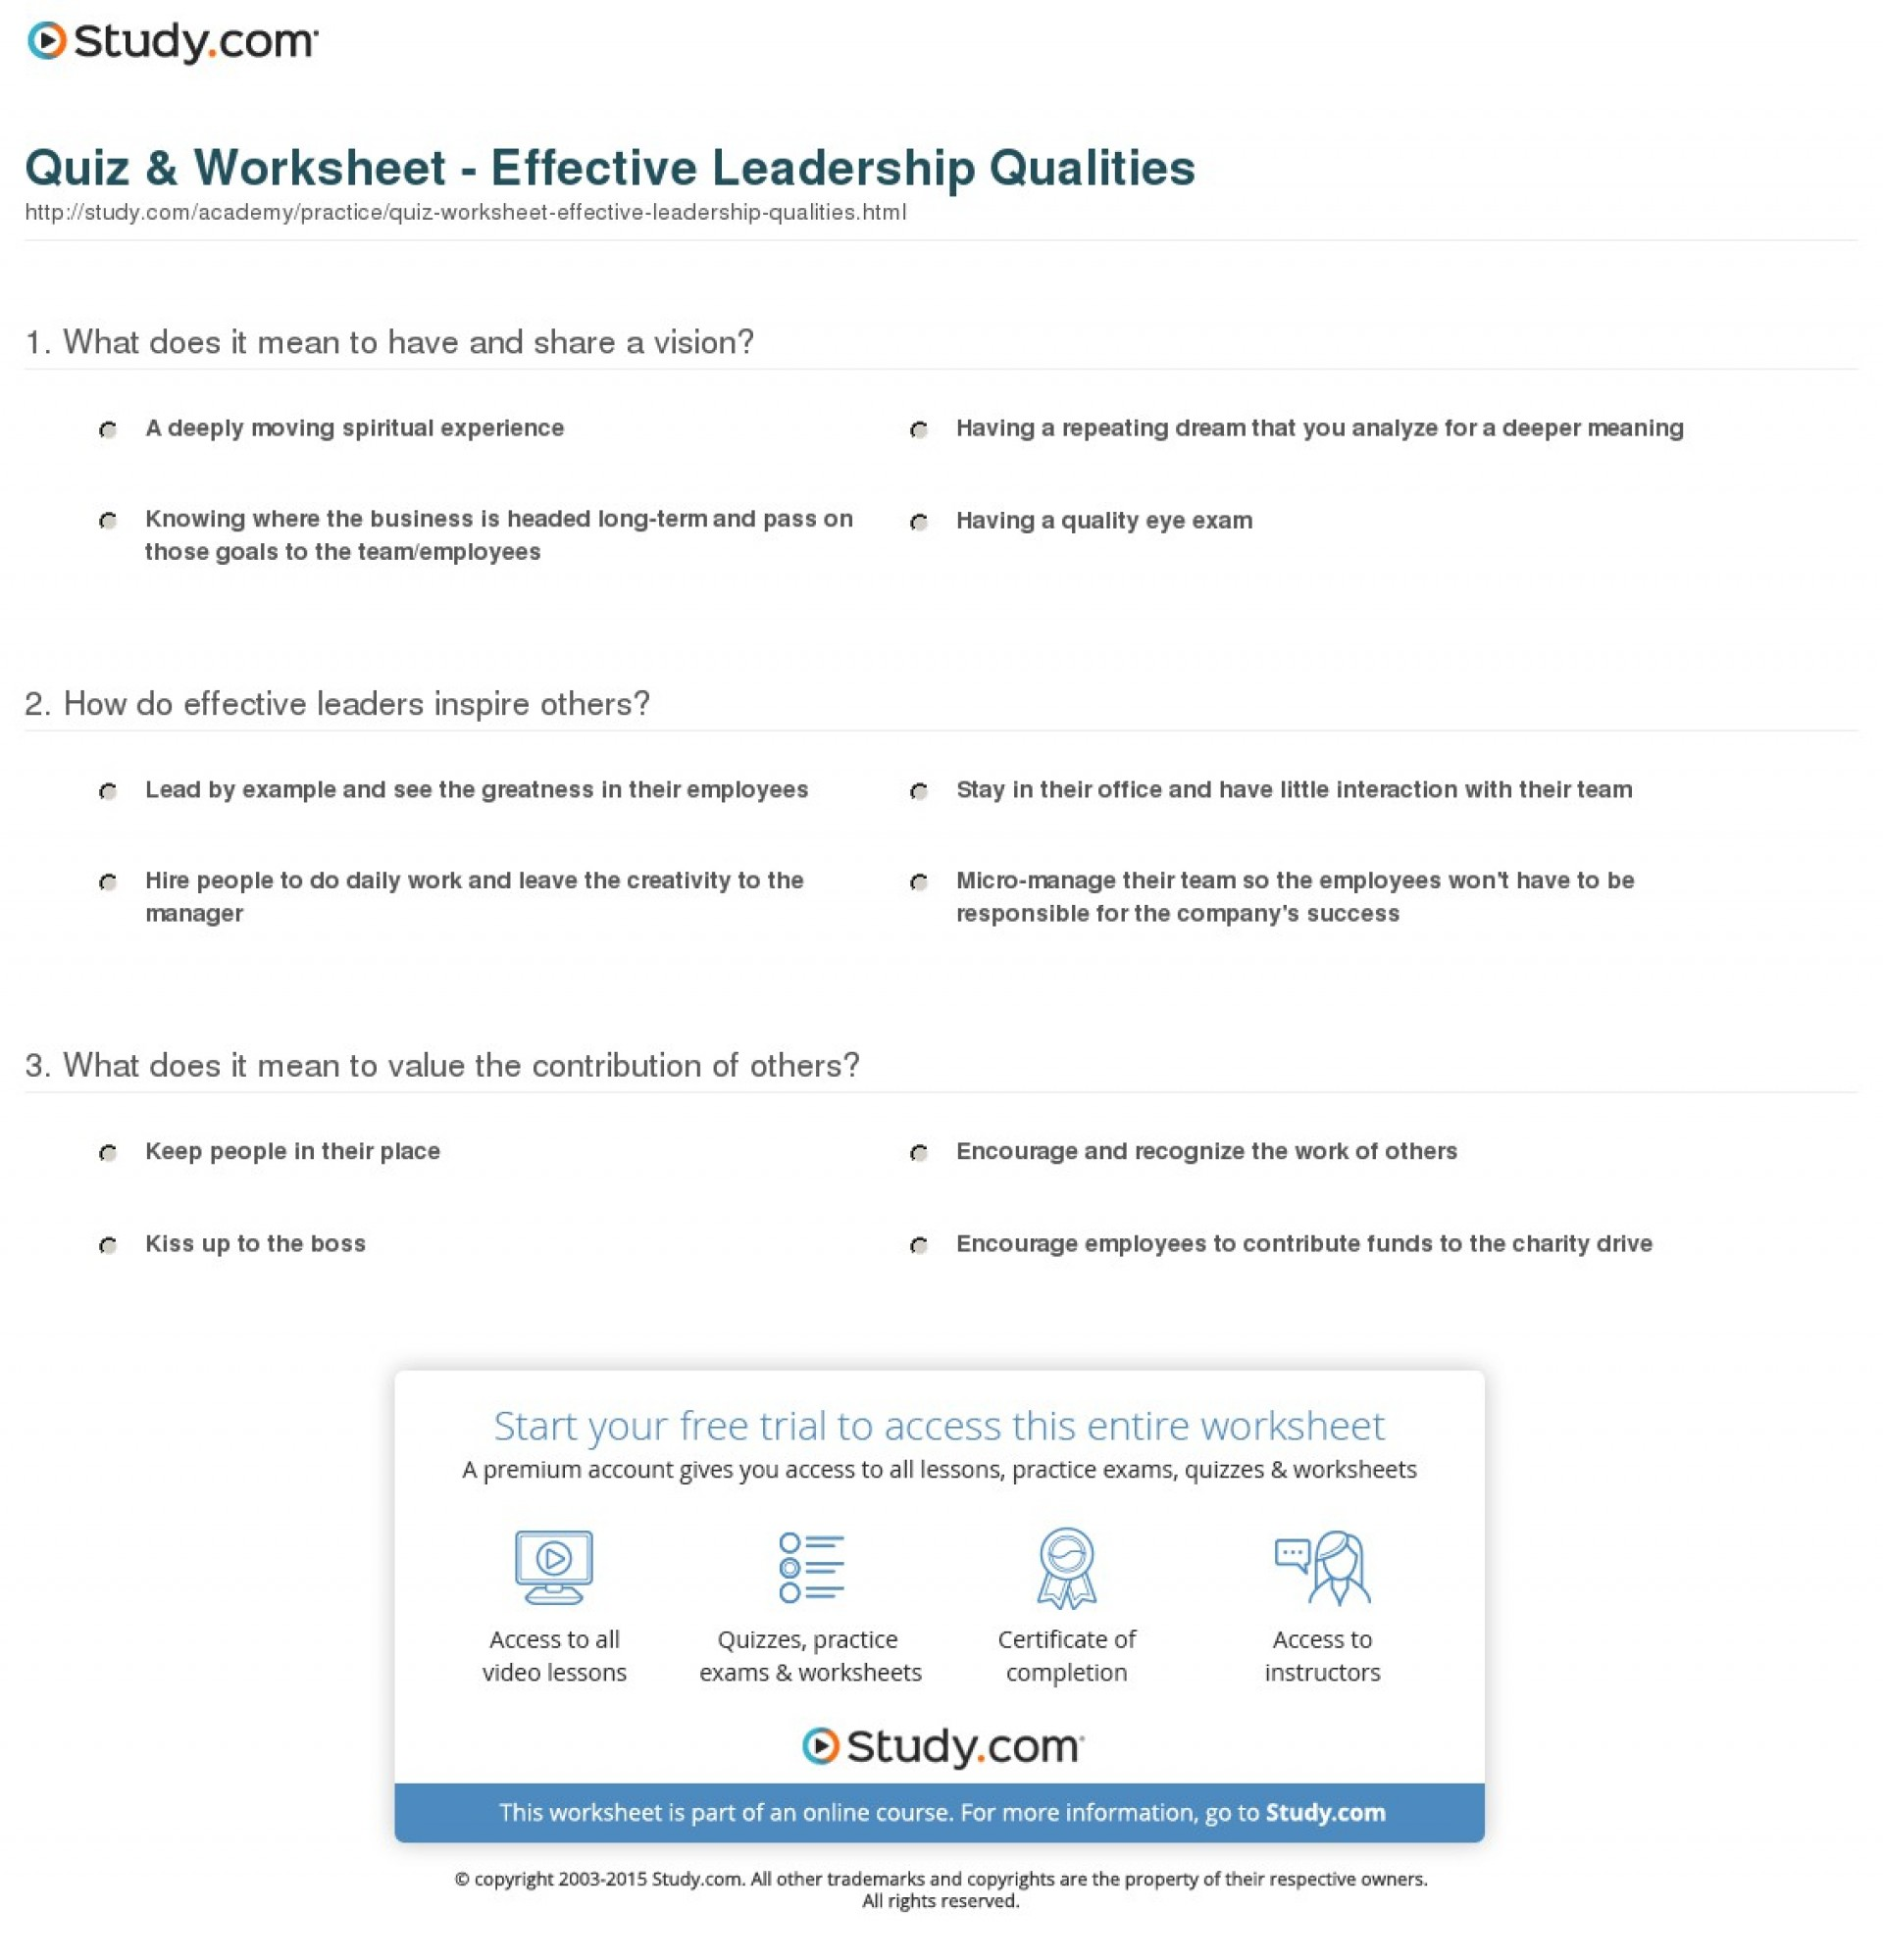 023 Quiz Worksheet Effective Leadership Qualities Essay Example Unique Examples Personal Philosophy Paper Mba College 1920